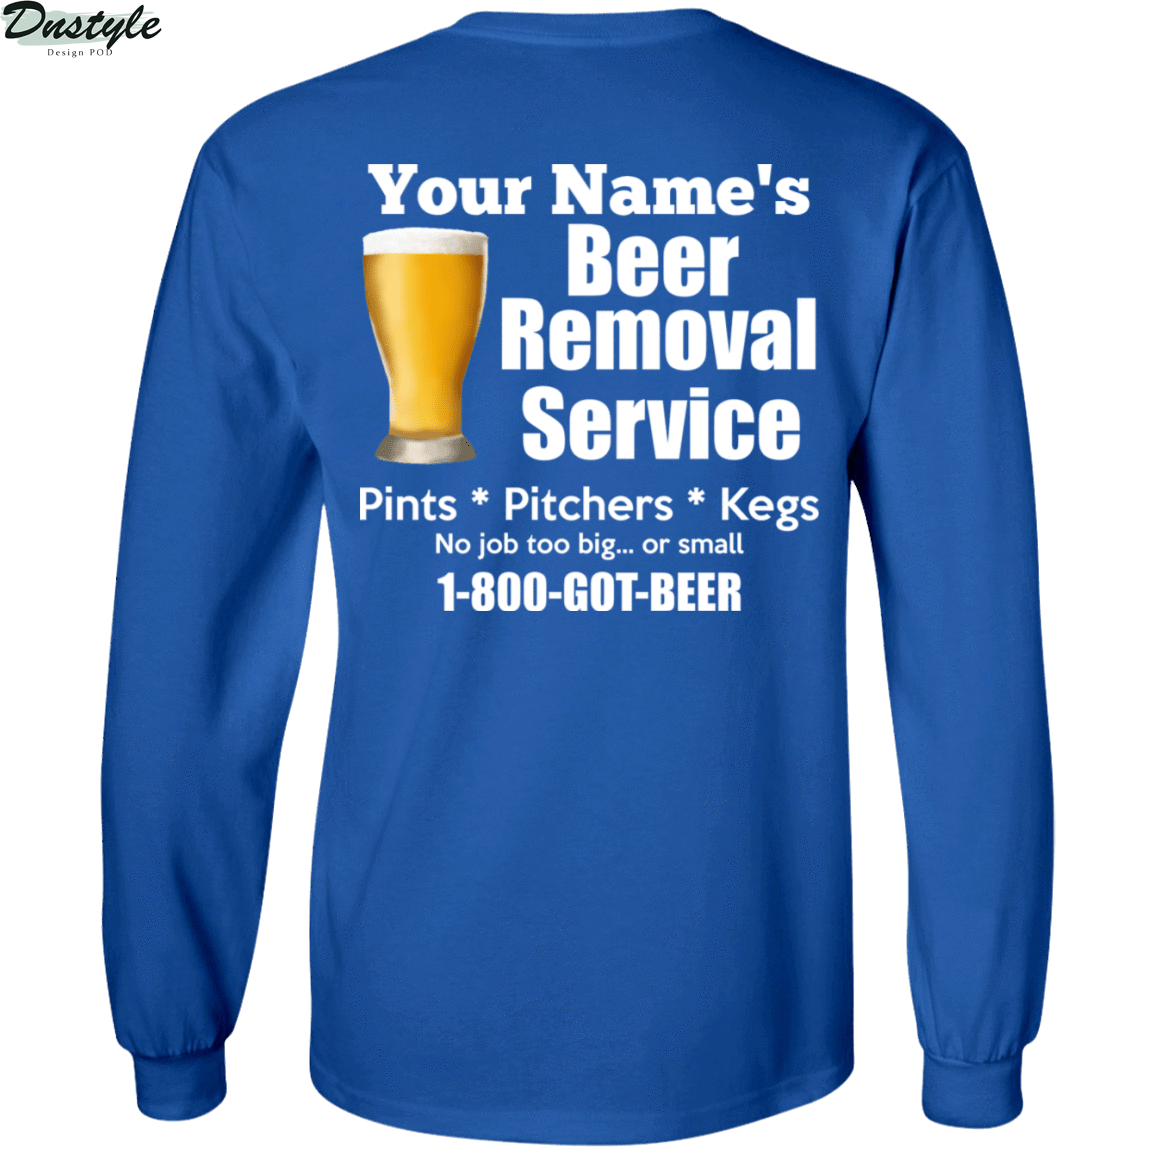 Personalized custom name beer removal service pints pitchers kegs shirt 3